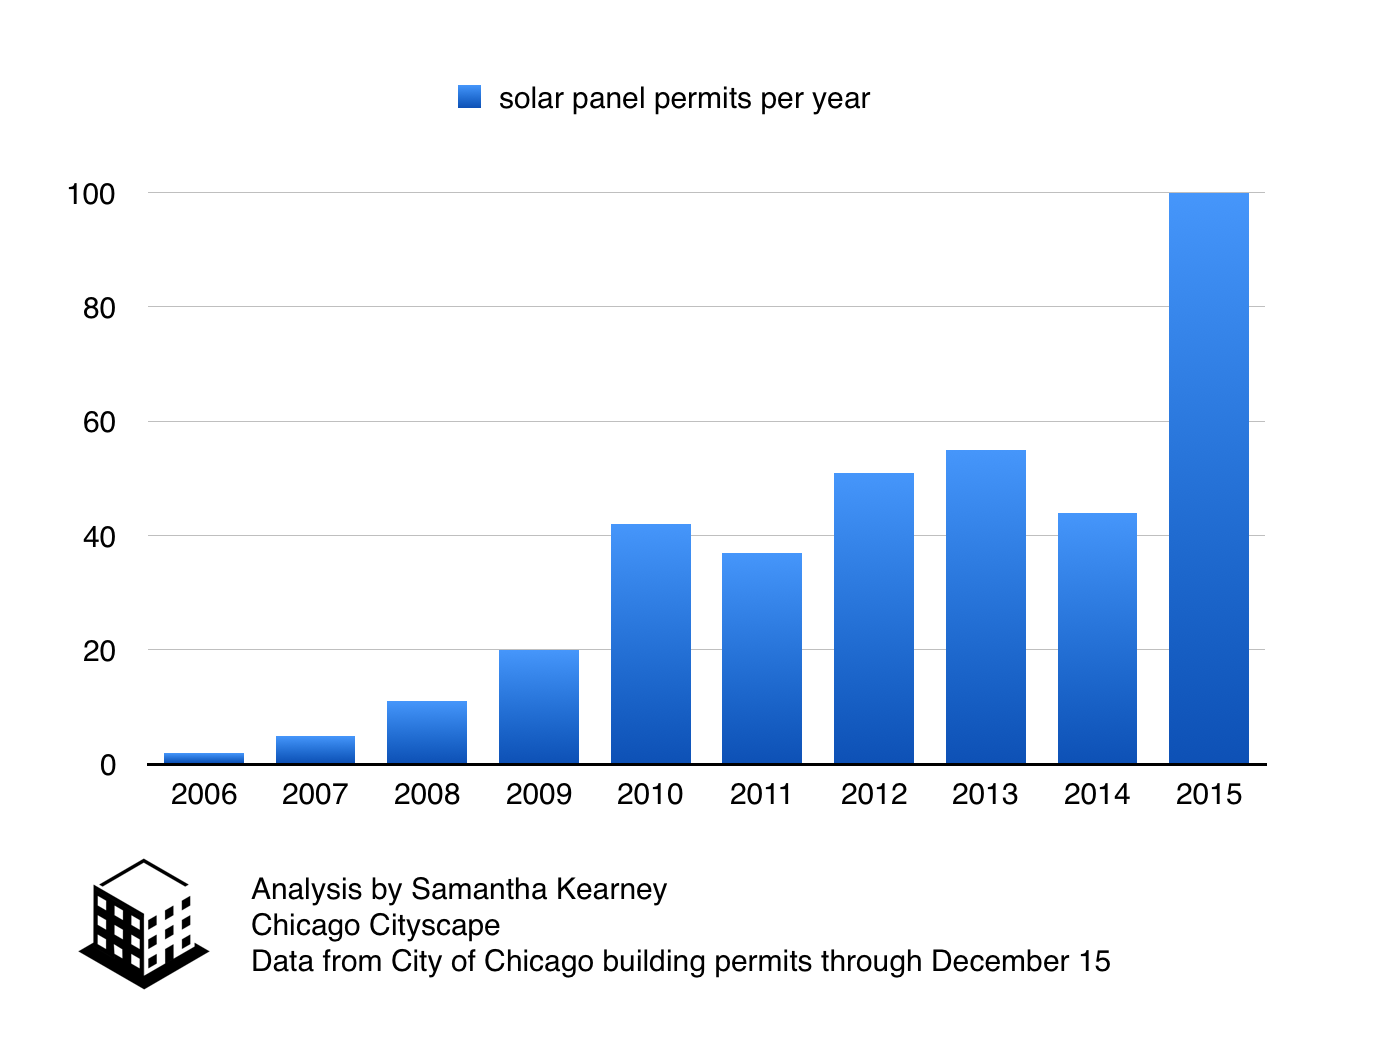 bar chart showing solar permits per year